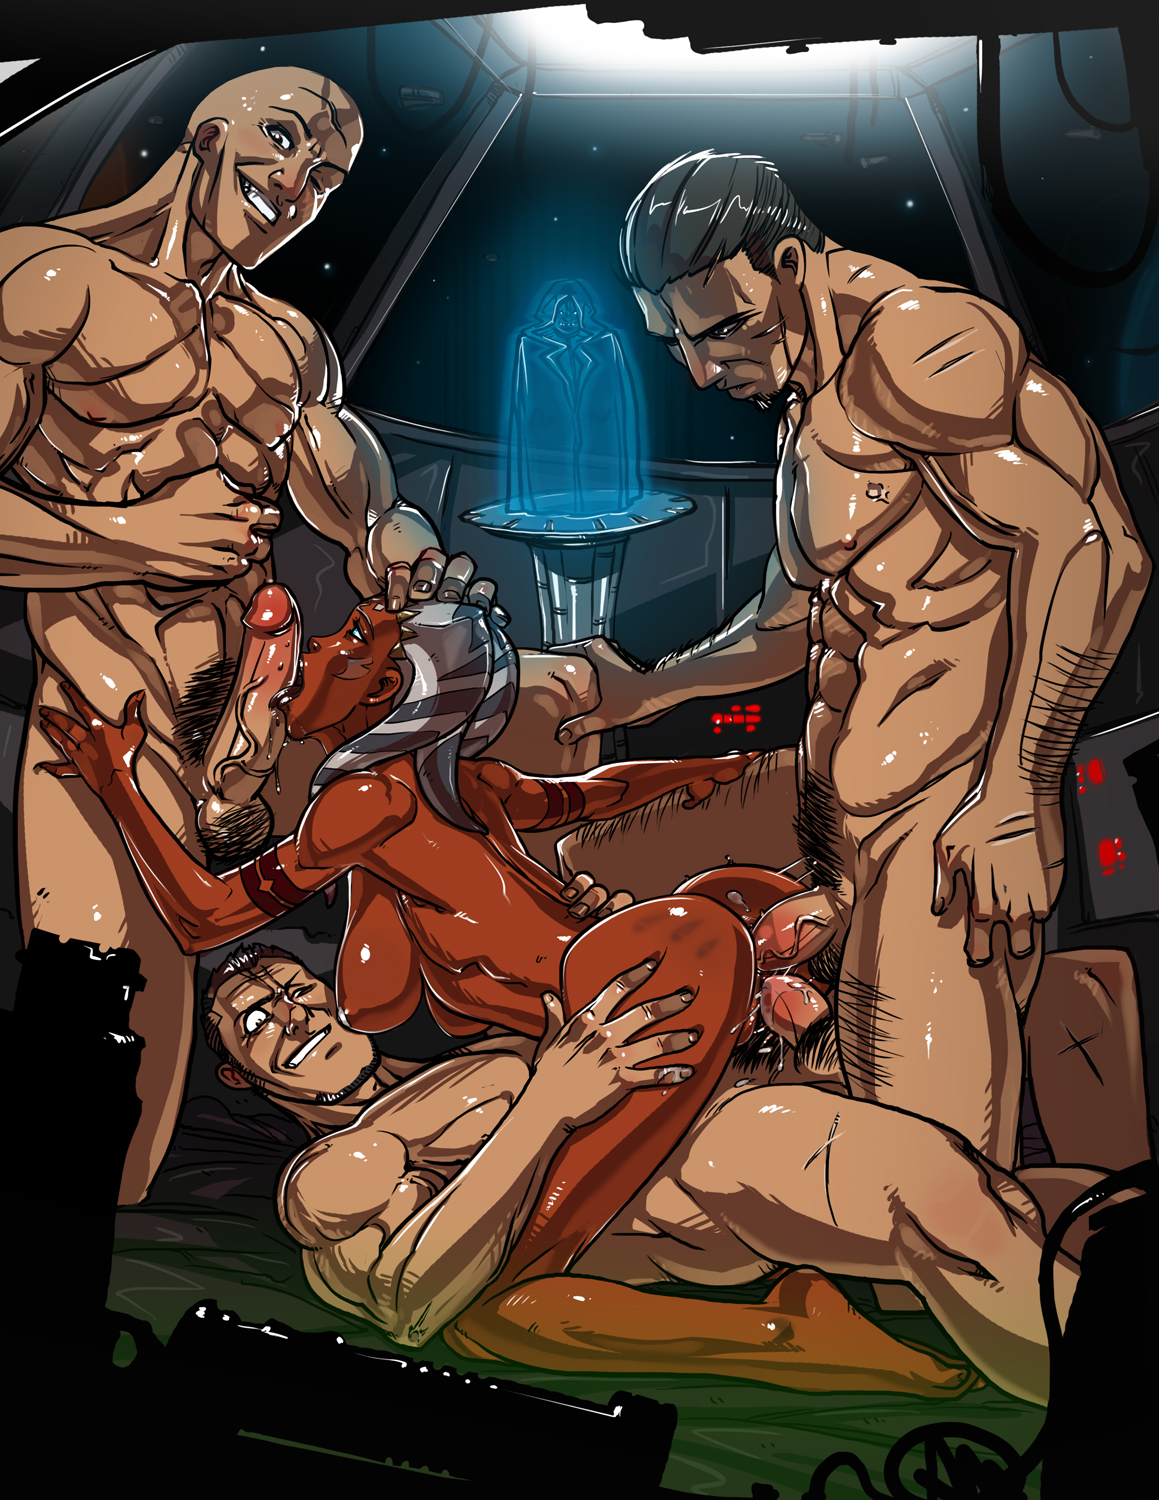 Star wars sex naked videos